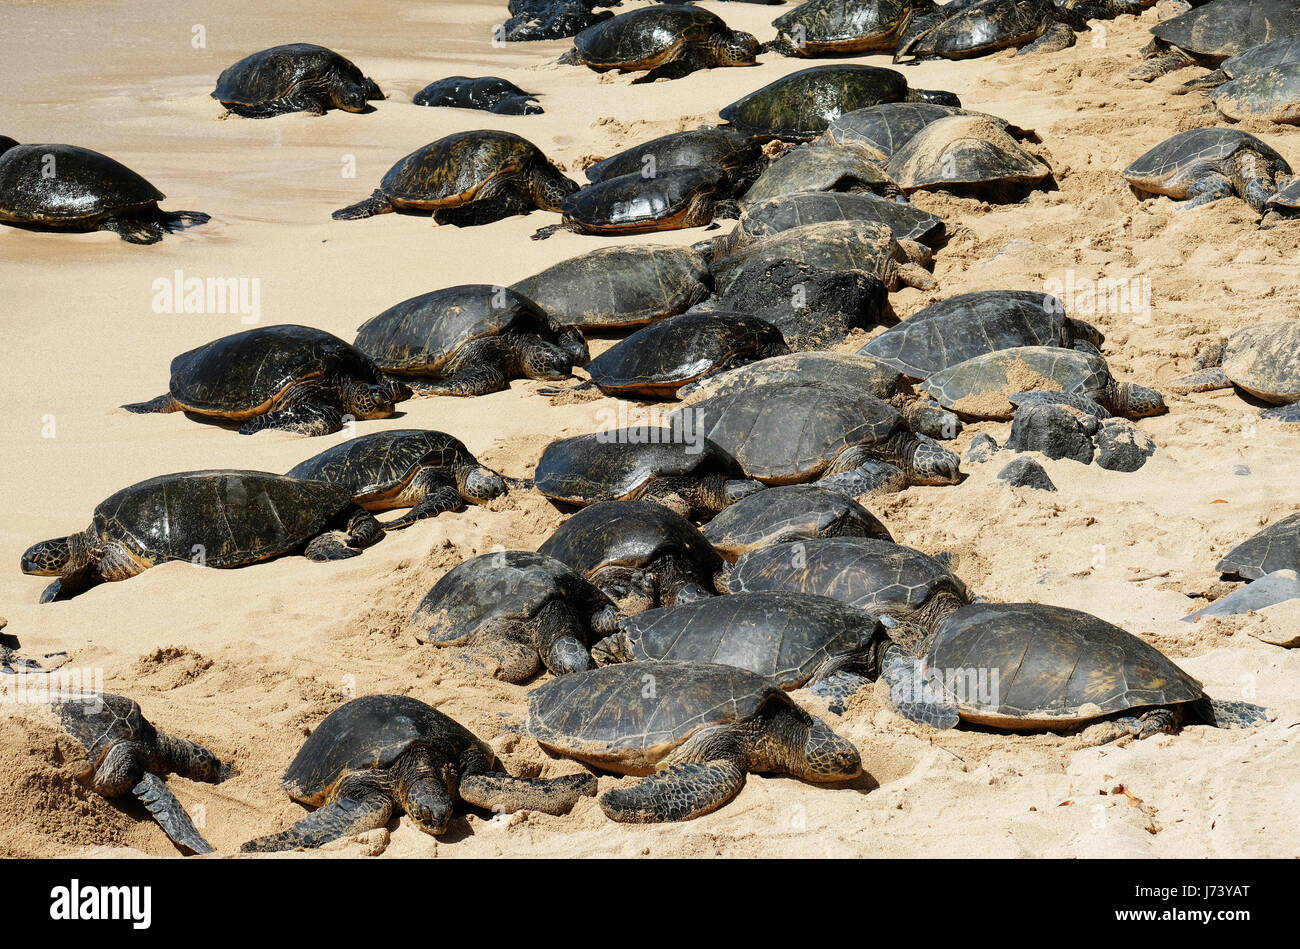 Green Sea Turtles (Chelonia mydas) resting on the beach at Ho'okipa Beach Park, Paia, Maui, Hawaii. - Stock Image